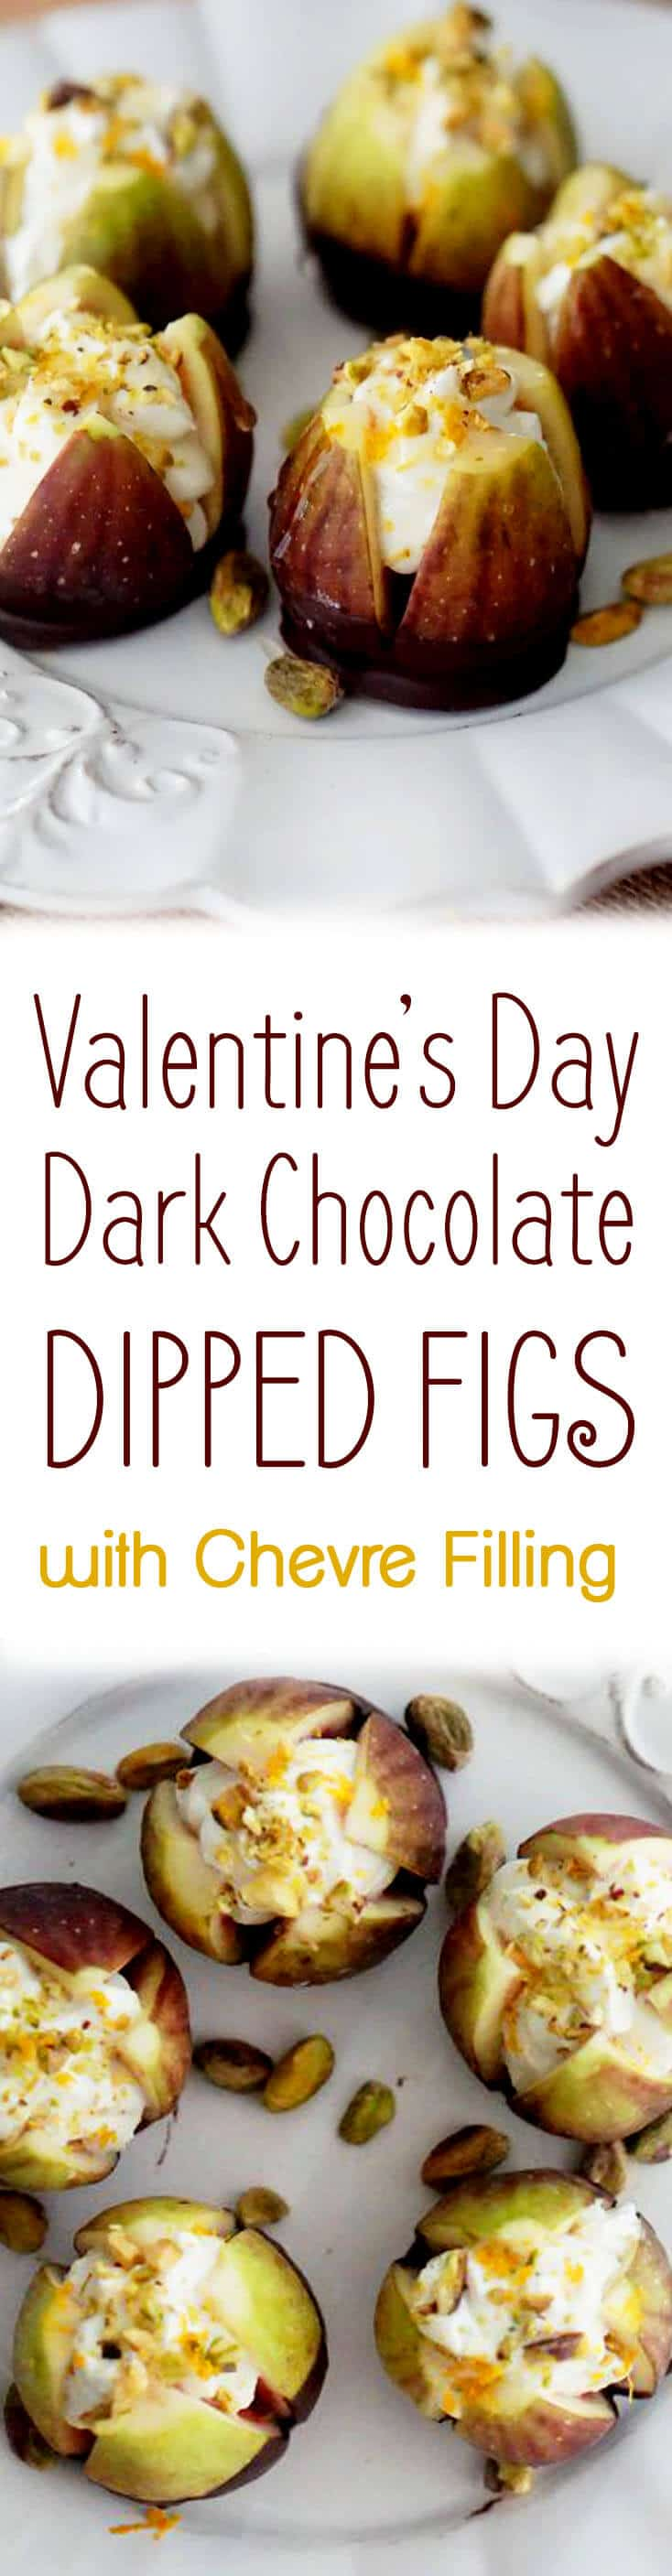 Let's be honest. Valentine's Day Dark Chocolate treats are pretty much a must at any V-day party or date-night. I need chocolate most times of the year, but especially on Valentine's Day, and these Dark Chocolate Dipped Figs satisfy that craving!